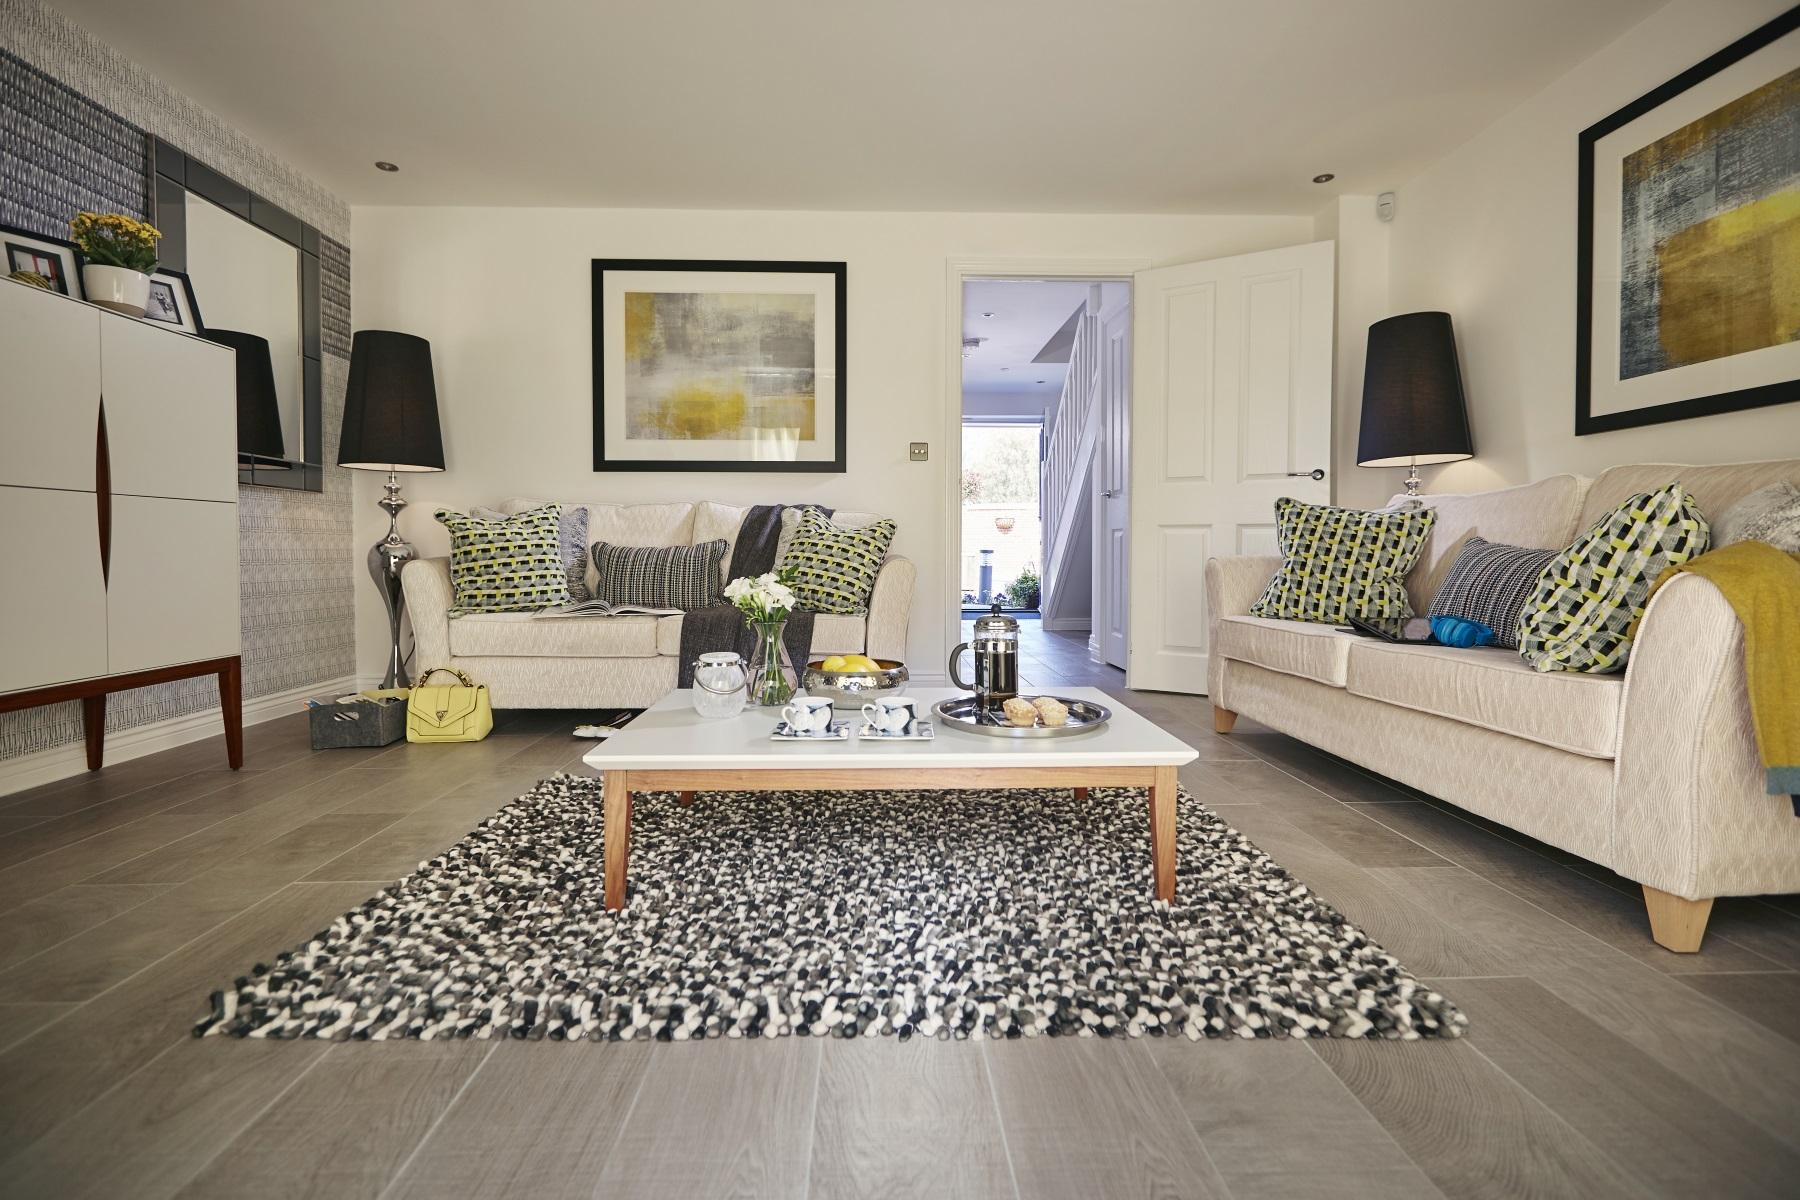 TW Exeter - Hele Park - Rackenford example living room 2